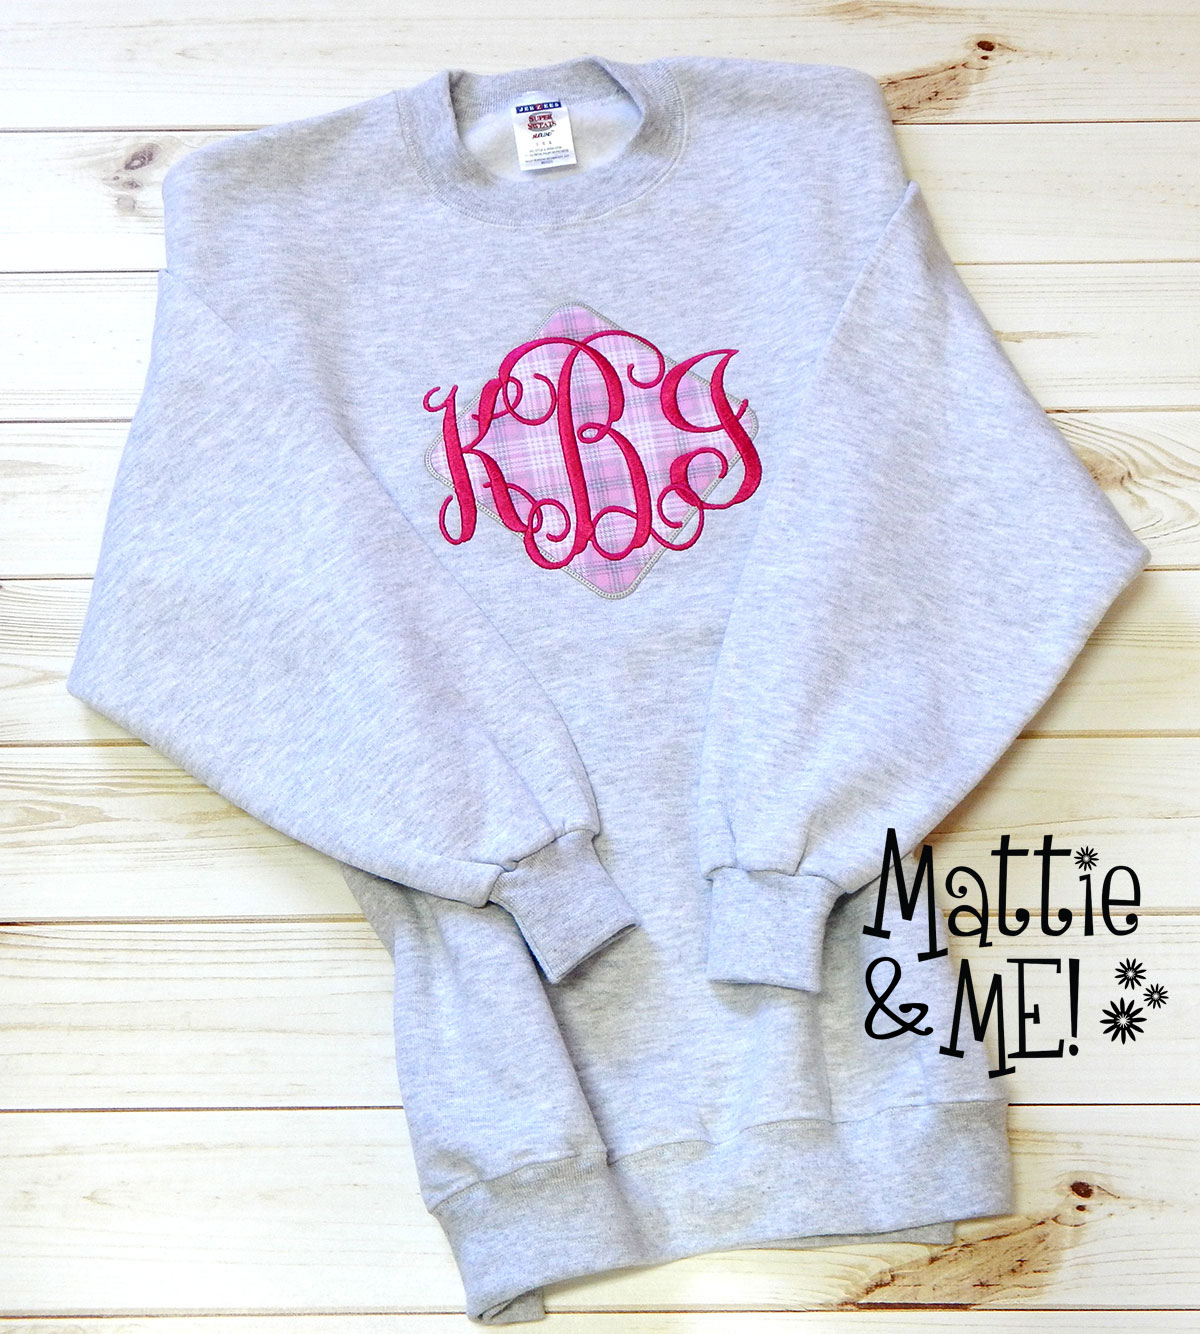 framed monogrammed sweatshirt finished